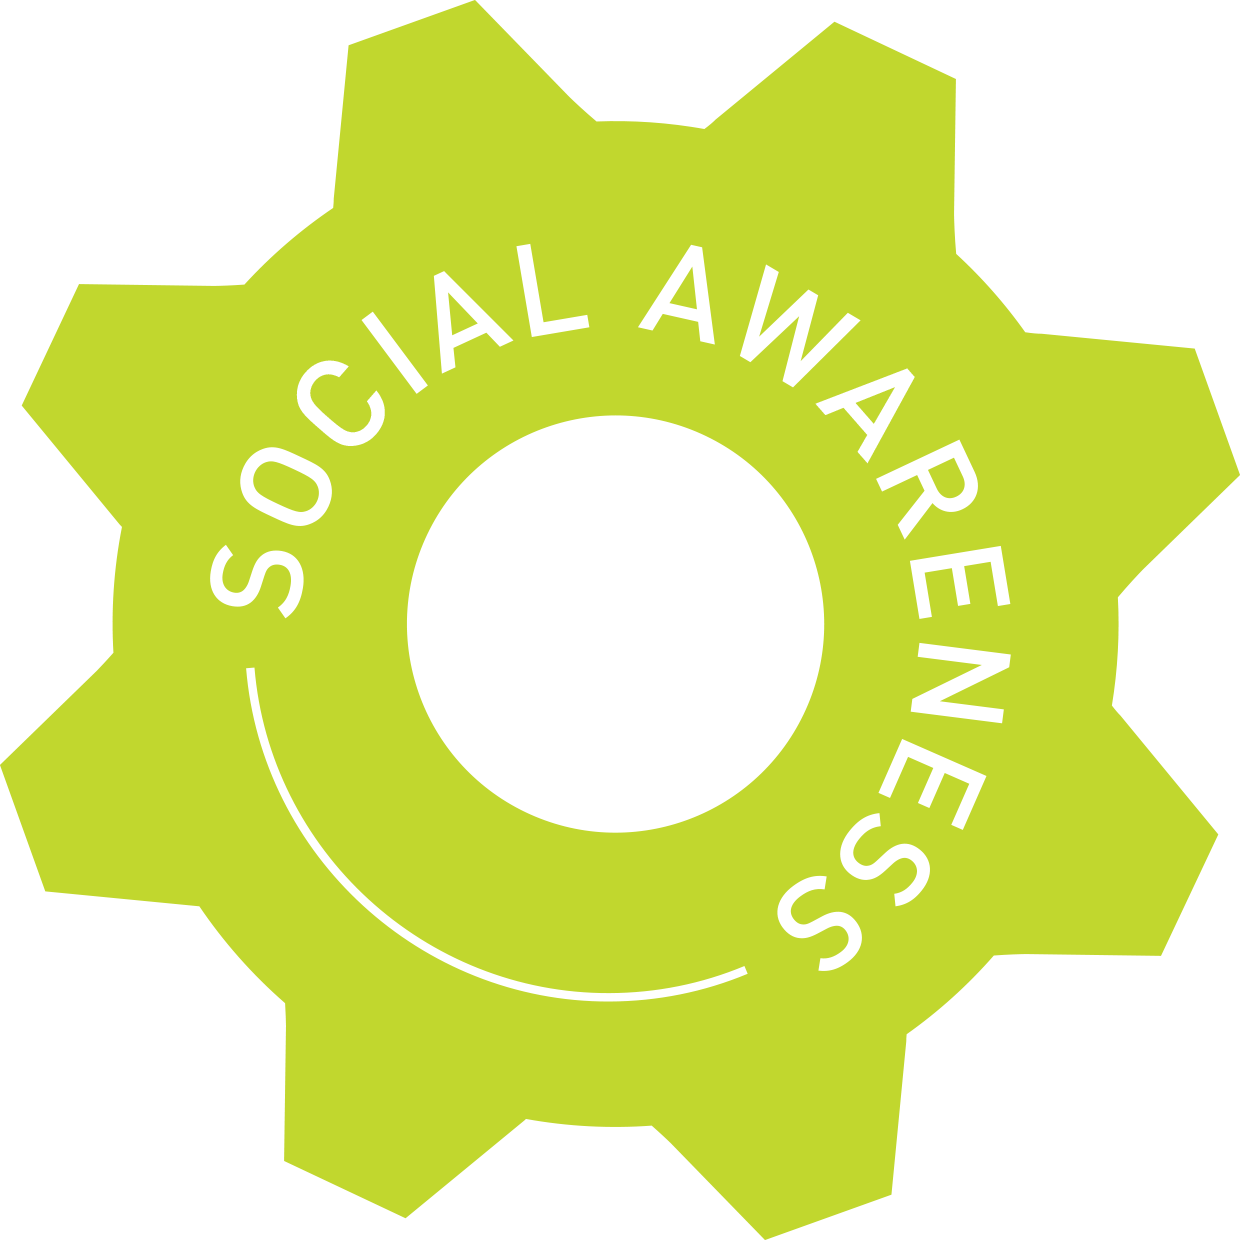 Copy of social awareness cog